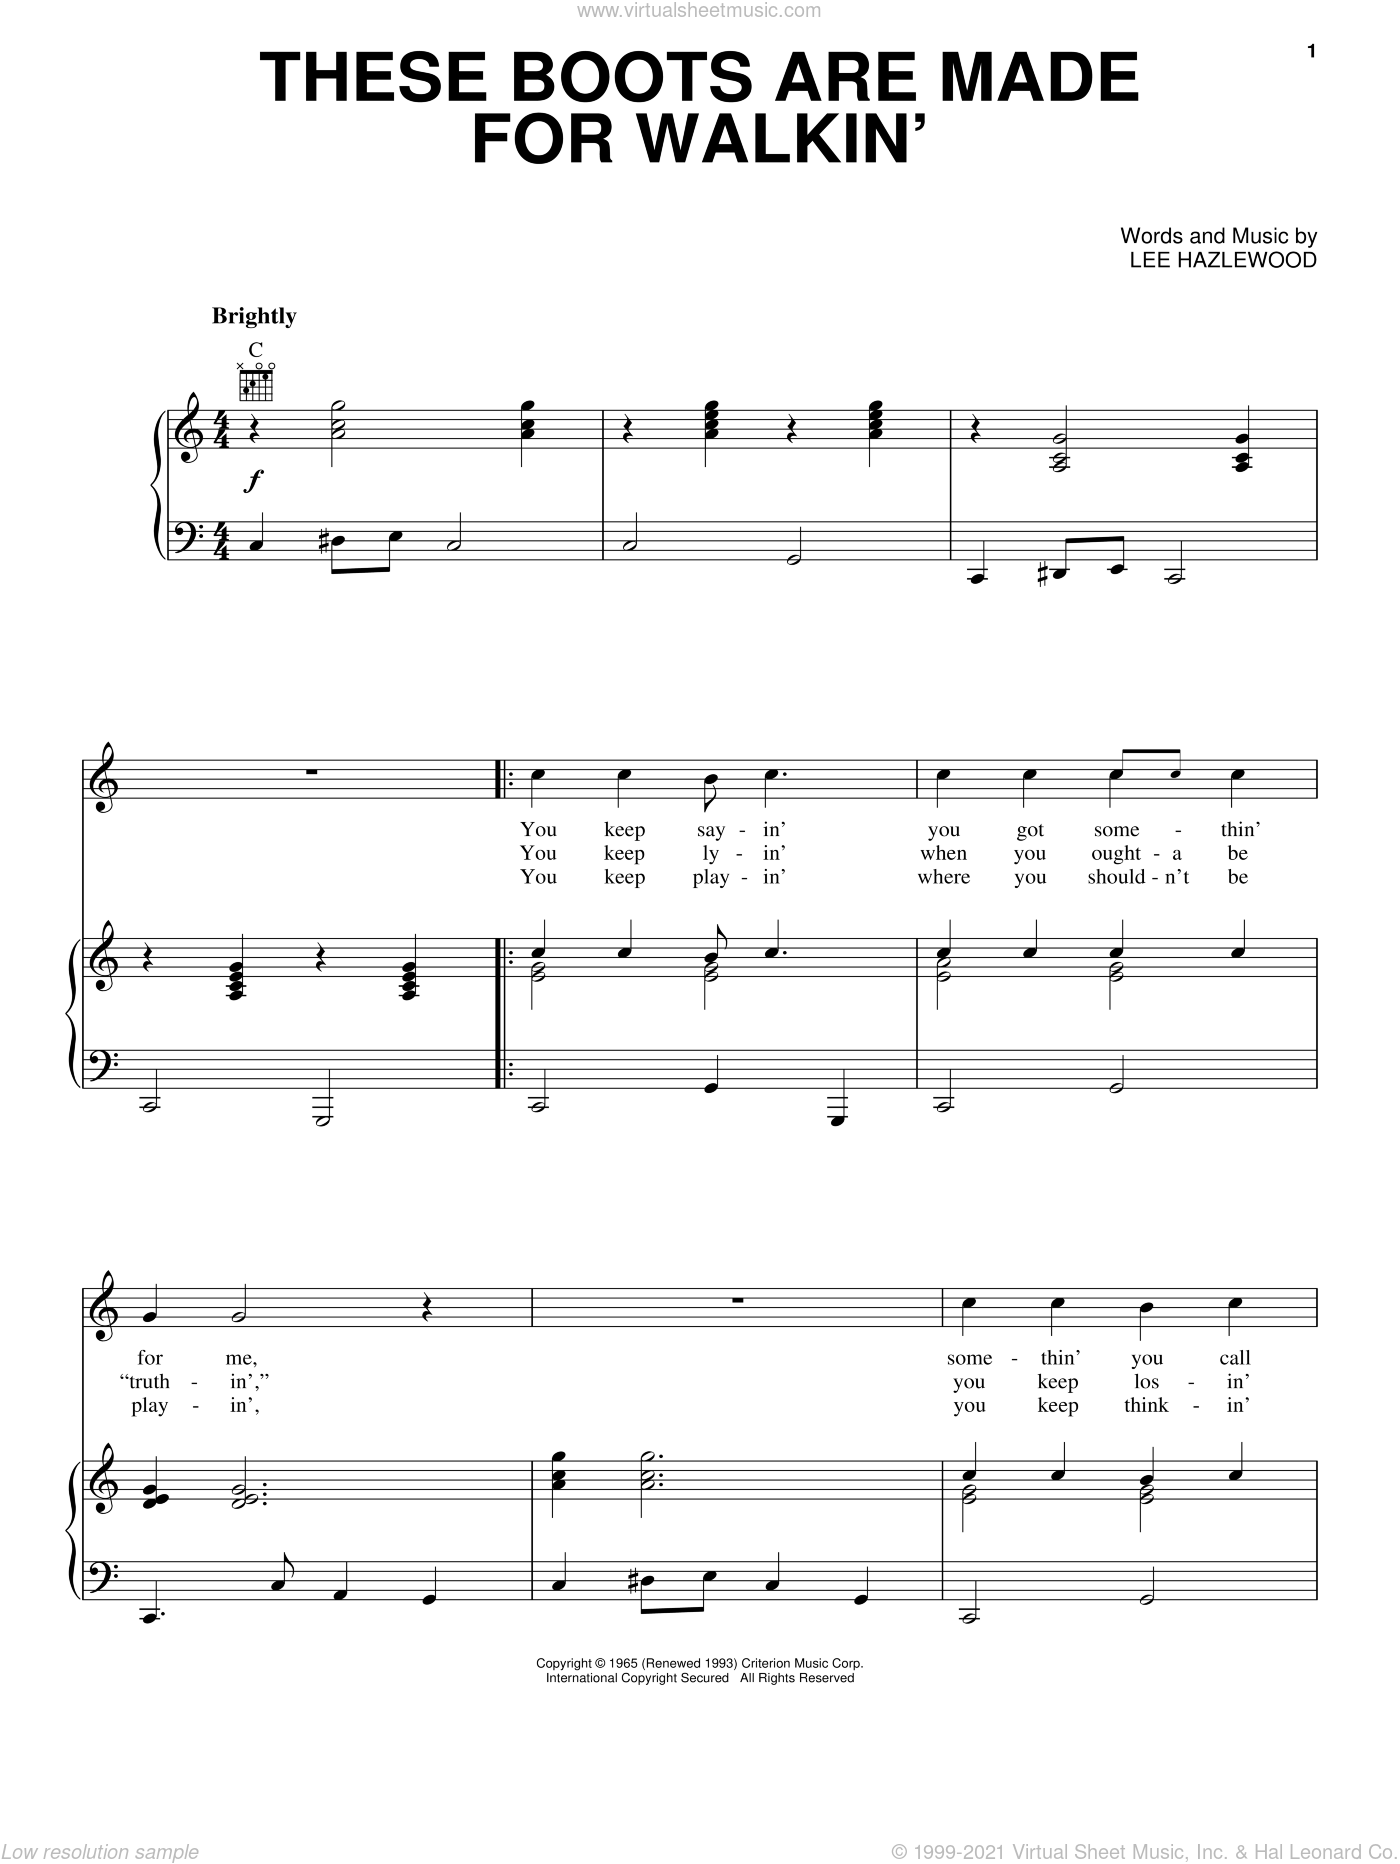 These Boots Are Made For Walkin' sheet music for voice, piano or guitar by Nancy Sinatra and Lee Hazlewood, intermediate skill level